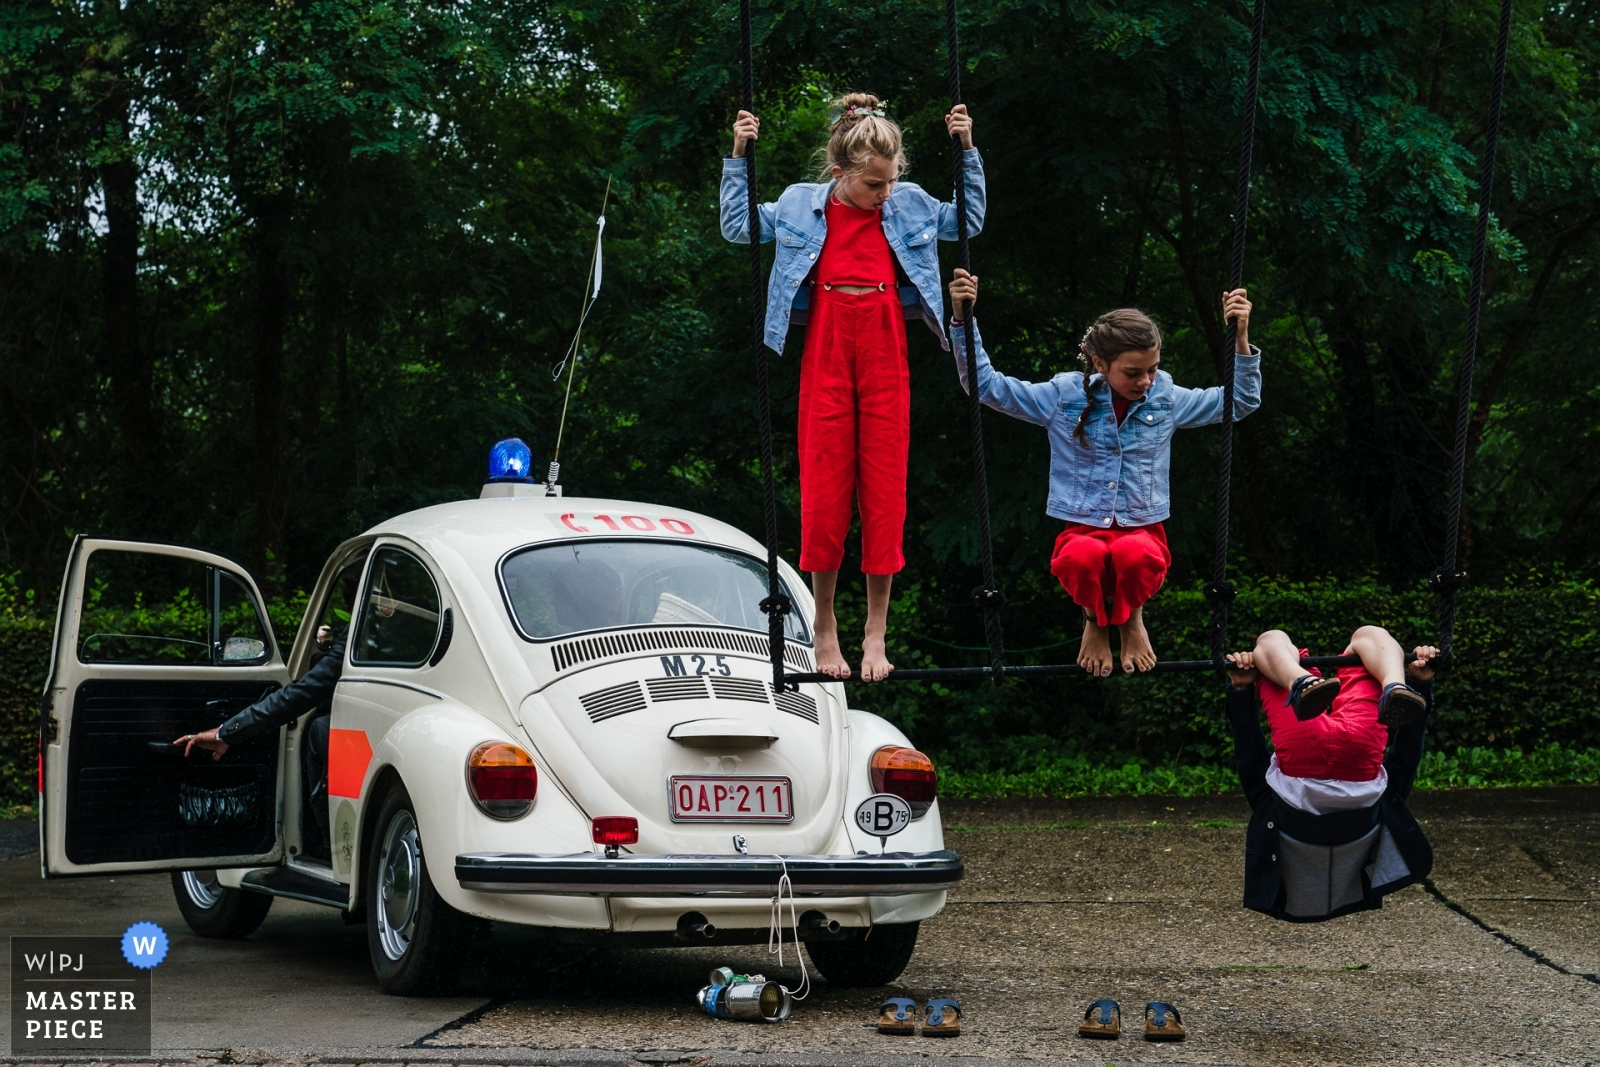 Circus for the win! - Vlaams-Brabant, Flanders Wedding Photography -    Grez Doiceau